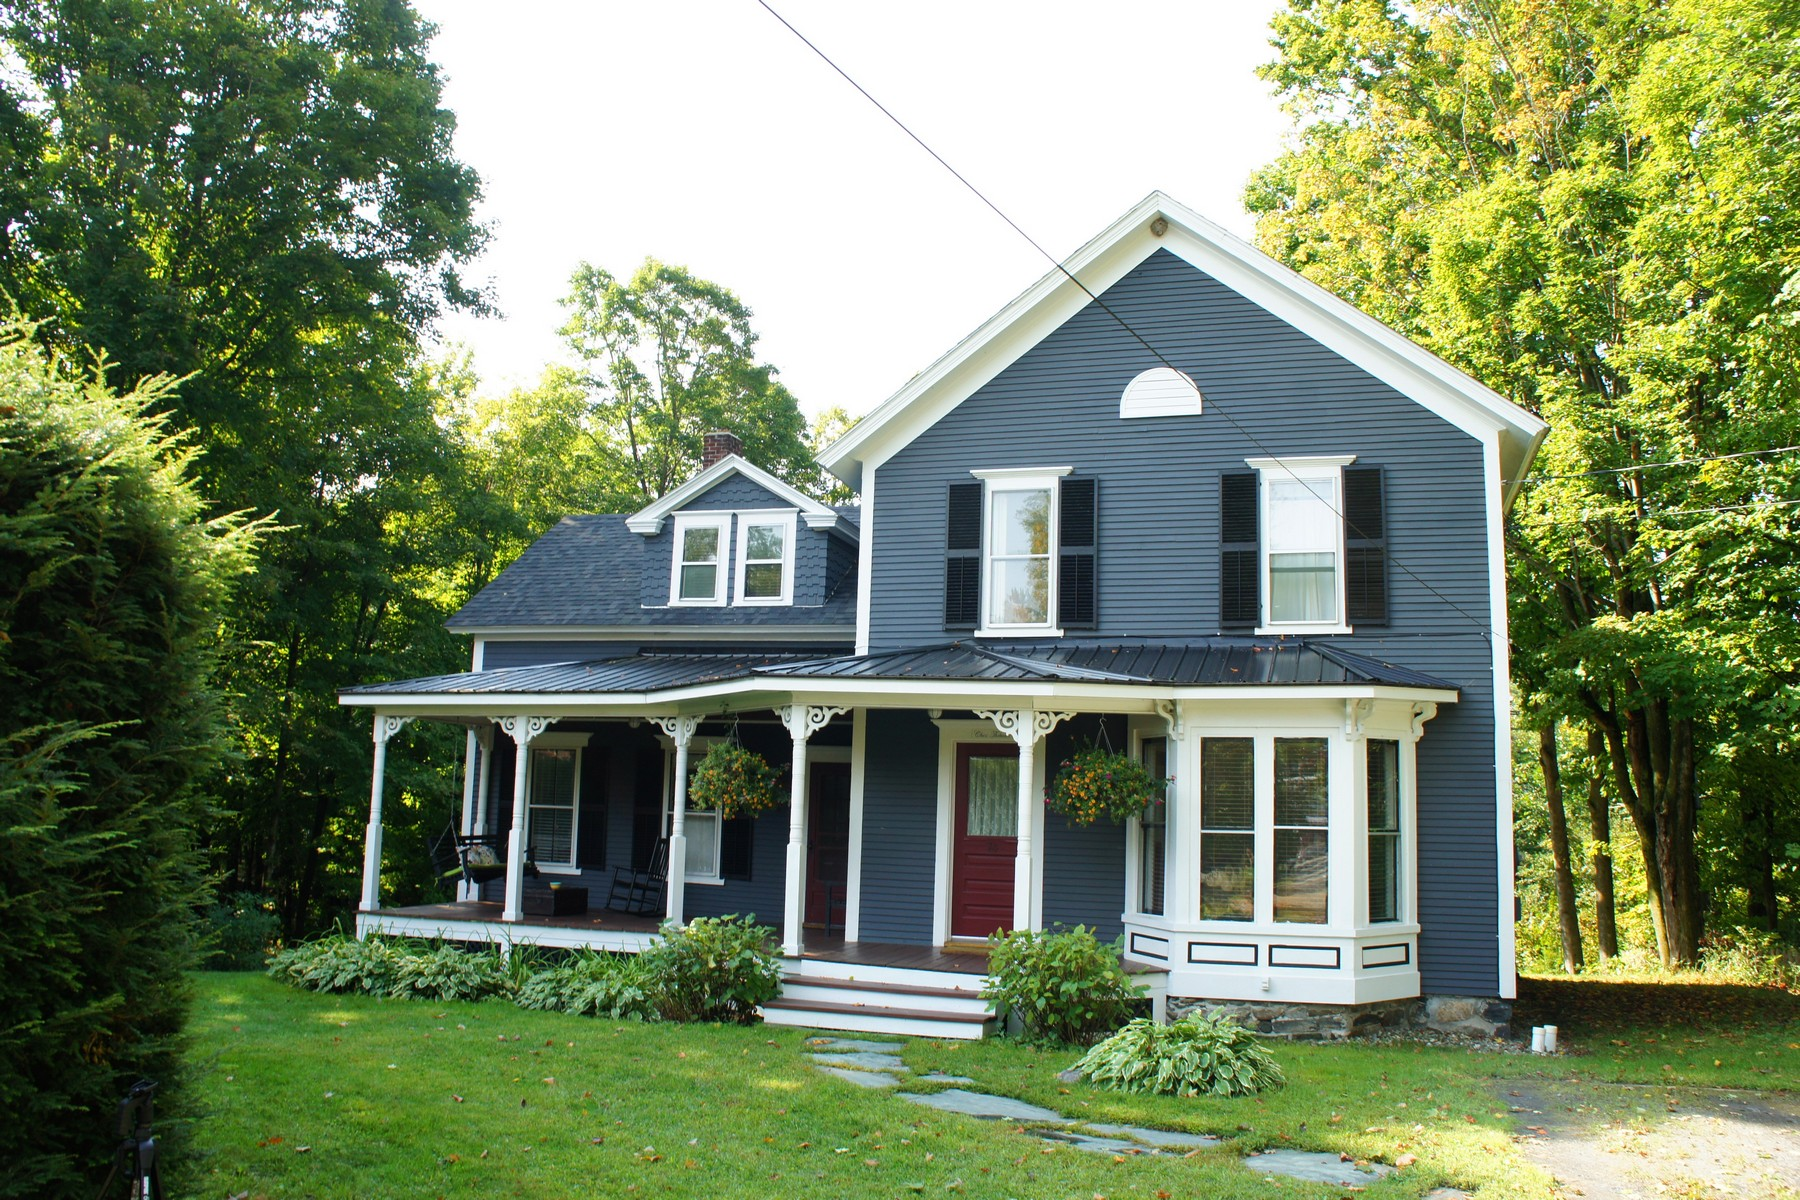 Single Family Home for Sale at 73 Commonwealth, Hyde Park 73 Commonwealth Ave Hyde Park, Vermont 05655 United States